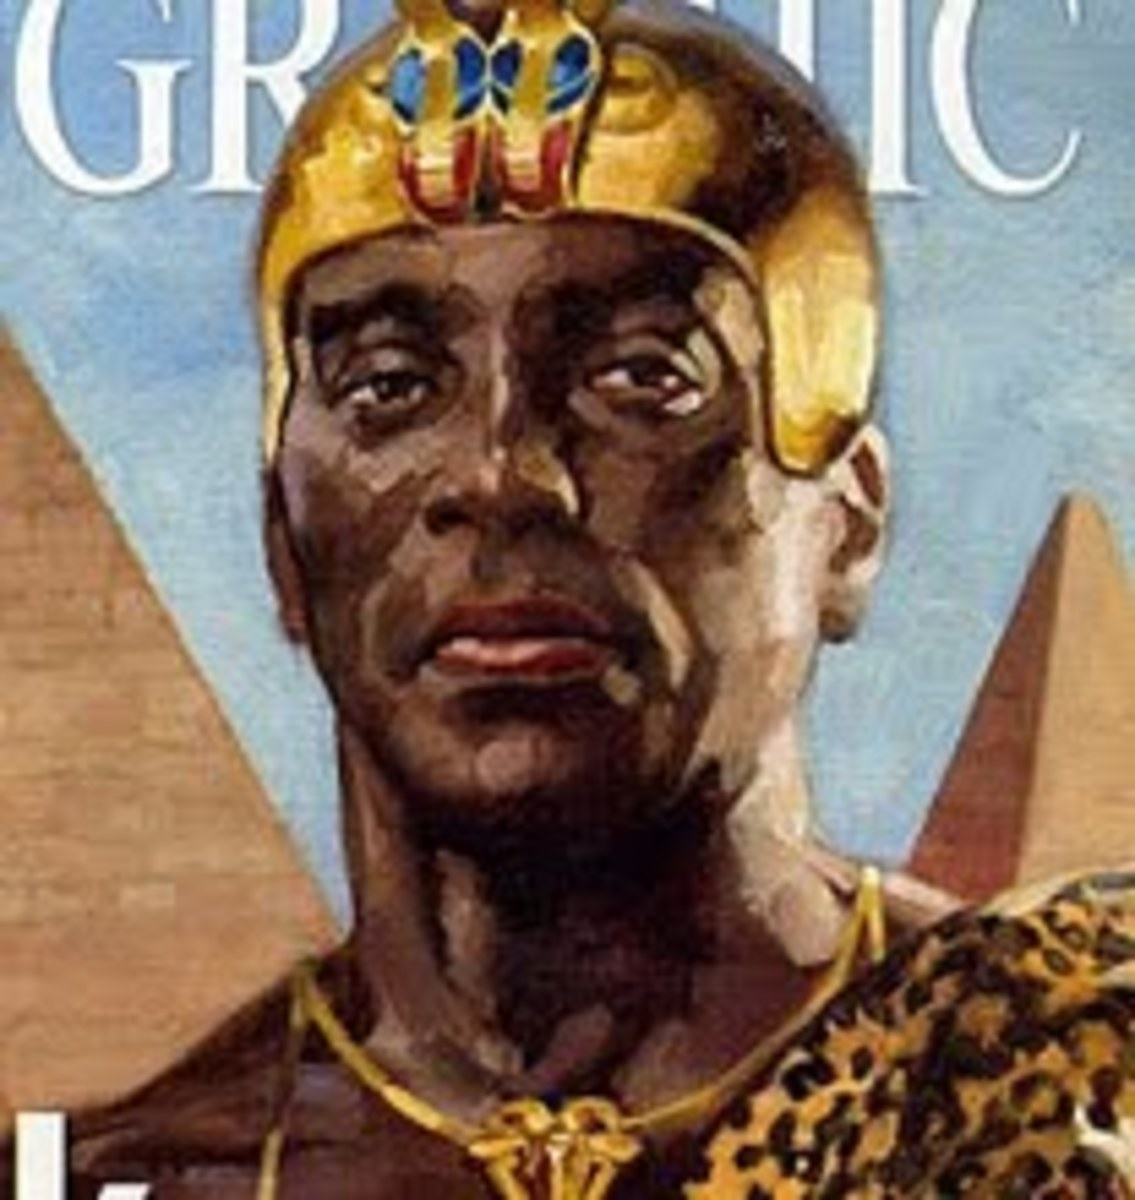 King Piye. the King who conquered Egypt and lived the rest of his life in Nubia, never visiting Egypt again.